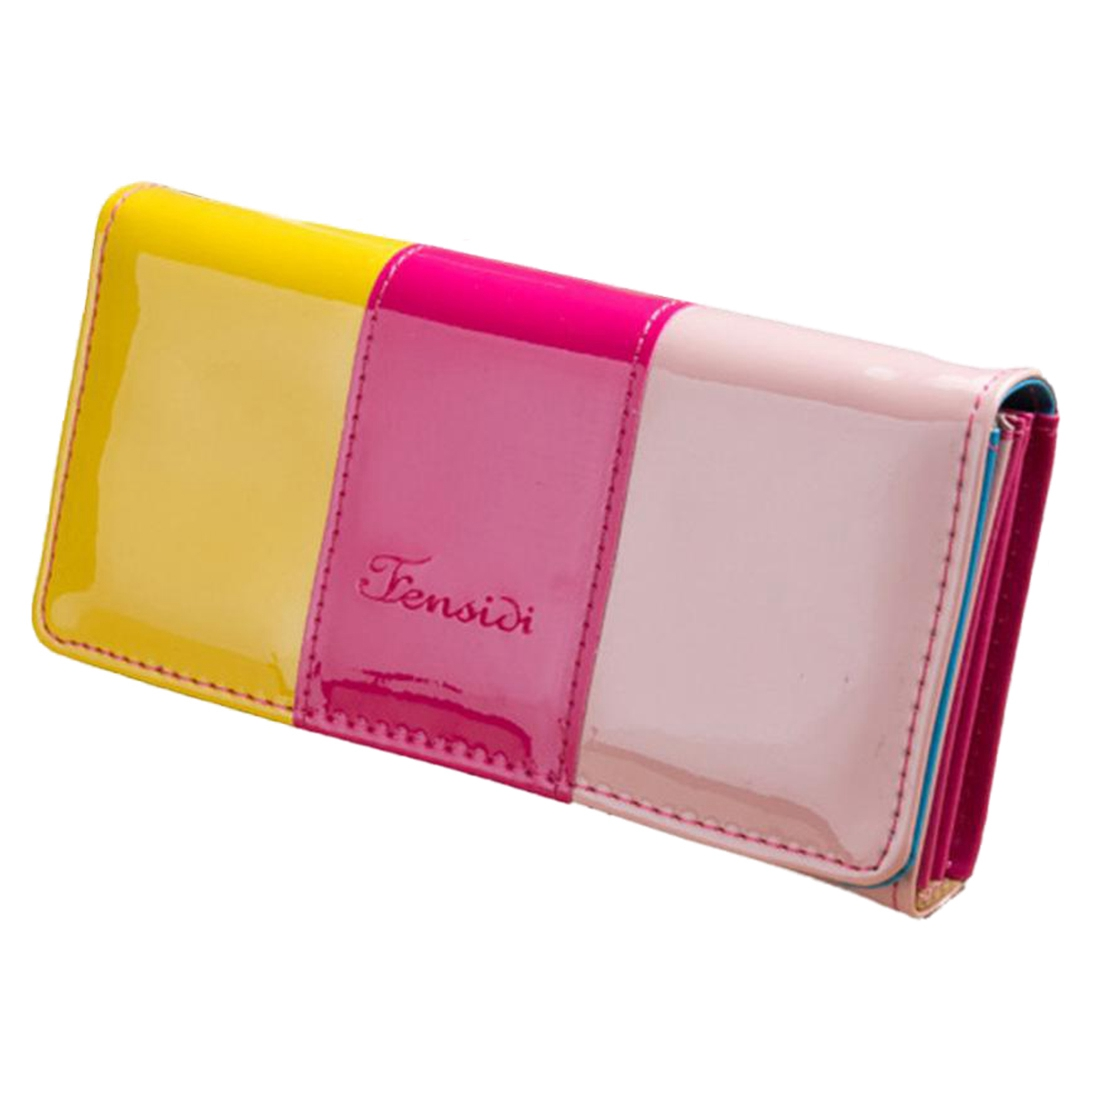 PU leather women wallets 3colors patchwork women bags ID card holders long style purse bolsa wallet coin keeper пуф patchwork colors